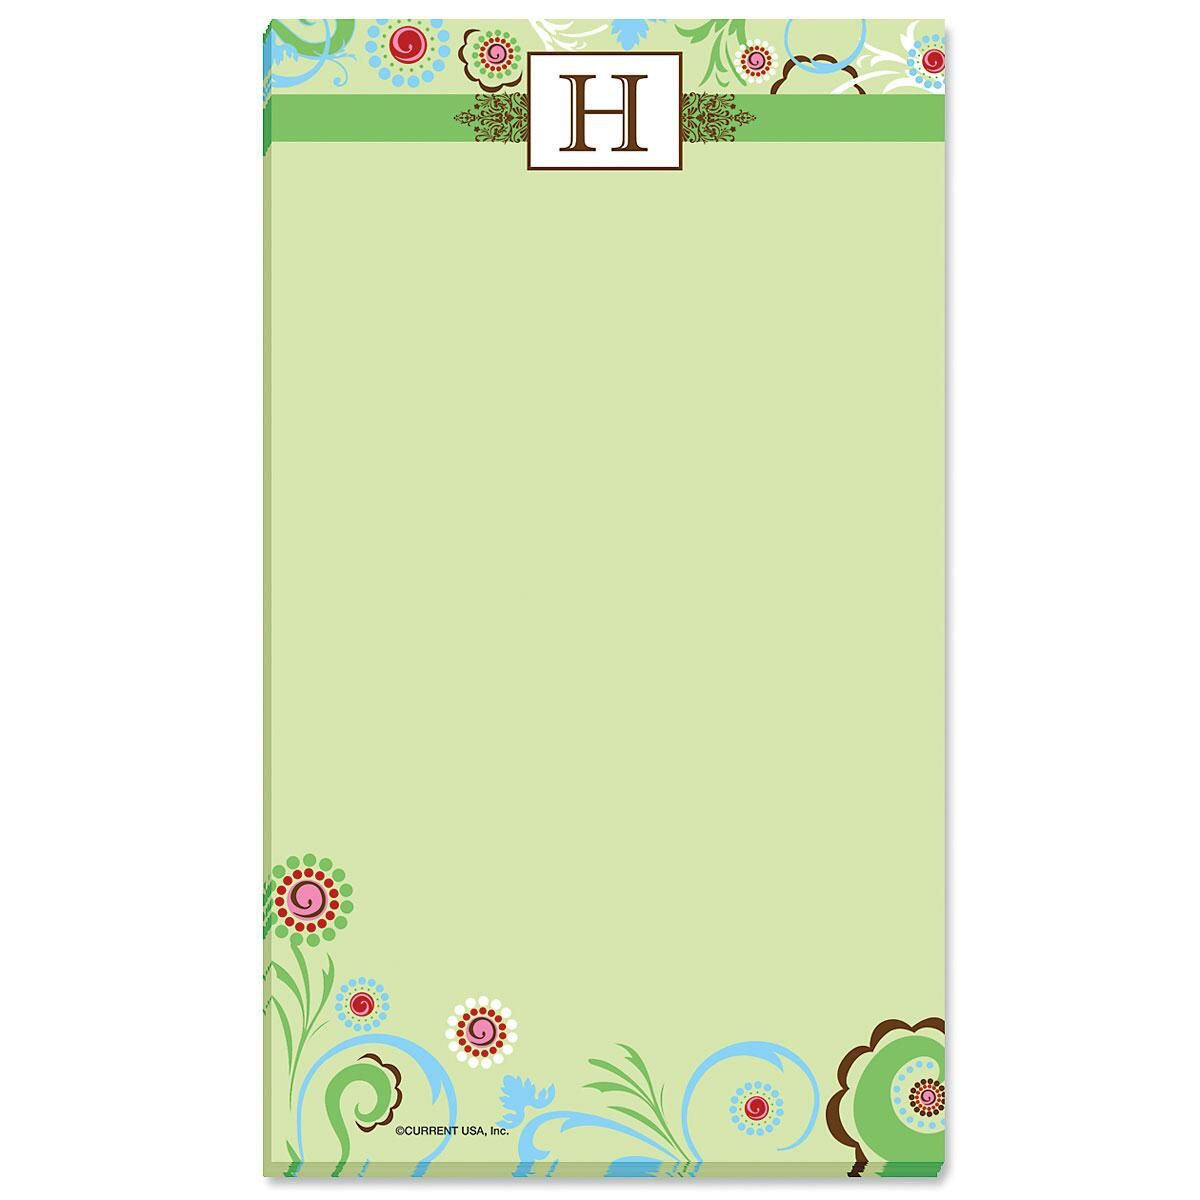 Fanciful Initial Notepad